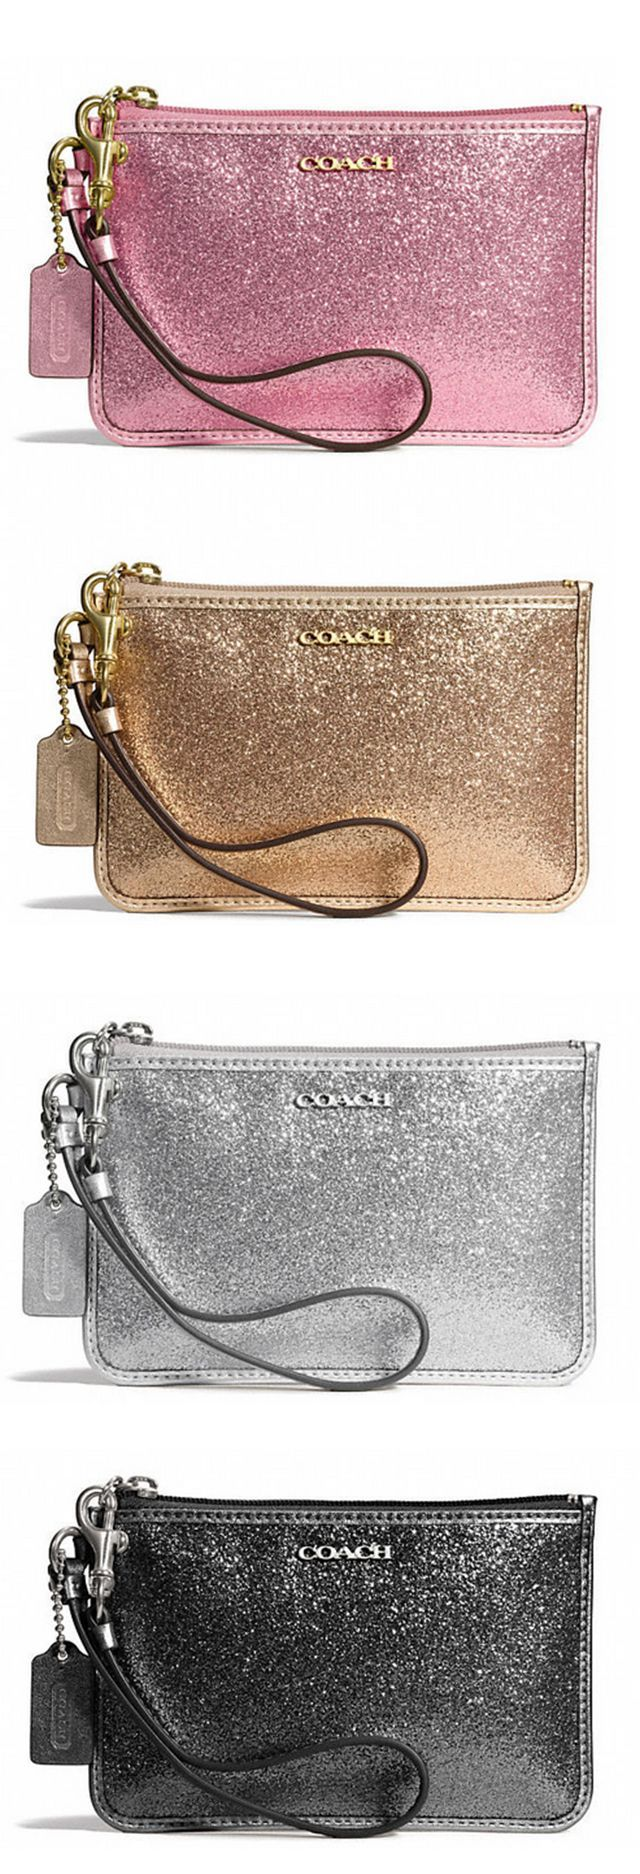 Sparkly wristlets - I'll take one in each color, please!